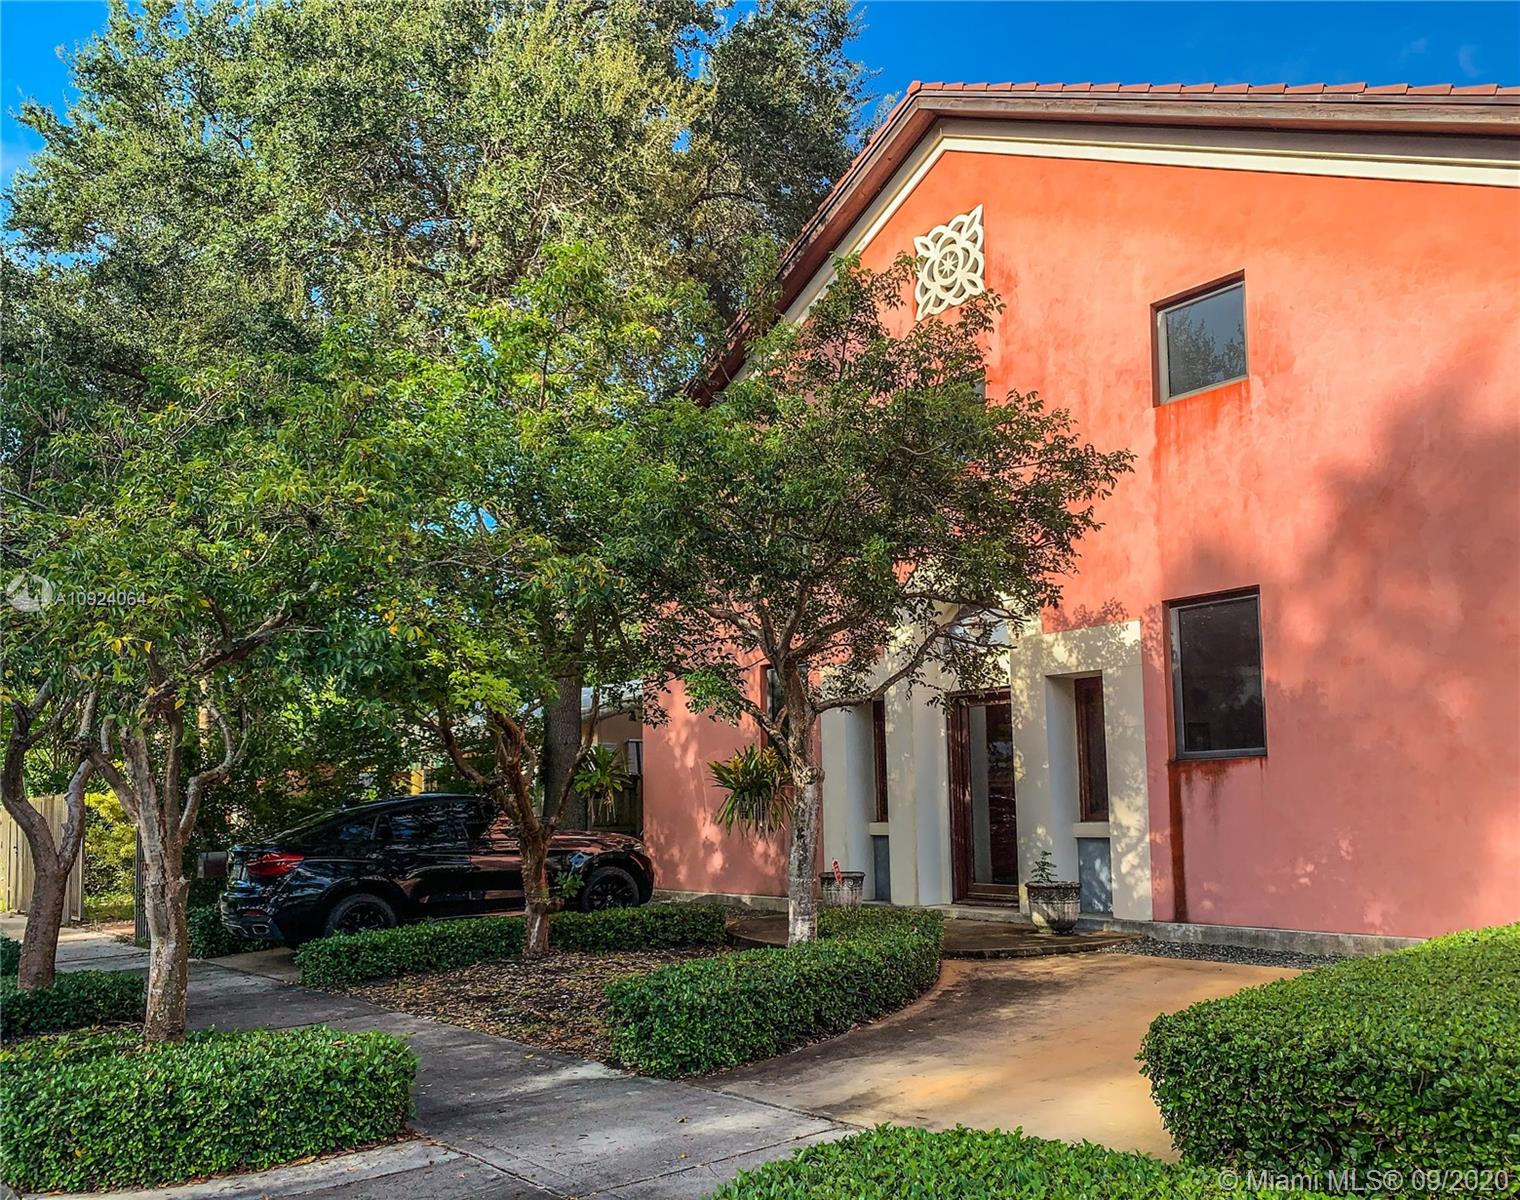 **CHECK BROKER REMARKS** FOR SOPHISTICATED BUYERS! Award winning Tuscan villa designed by renowned architectural firm Trelles-Cabarrocas. National Award for Classic Architecture 2012 AIA (See award in attachments) . Formal living spaces & downstairs master bedroom. Open onto covered loggia & the gardens beyond. Unique features include 12 ft. ceilings, upstairs wooden family room, Murano blown-glass light fixtures, custom mahogany cabinetry w/stained glass, oil-rubbed yellow pine wood paneling, and closets, stained & polished concrete floors and an expansive attic/storage space at the top. Very fresh during the heat of the summer months. Minutes from downtown Miami & the Grove Village. A few blocks away from Grove's Parks and Marinas, 10 minutes away from the Airpot and from Key Biscayne.